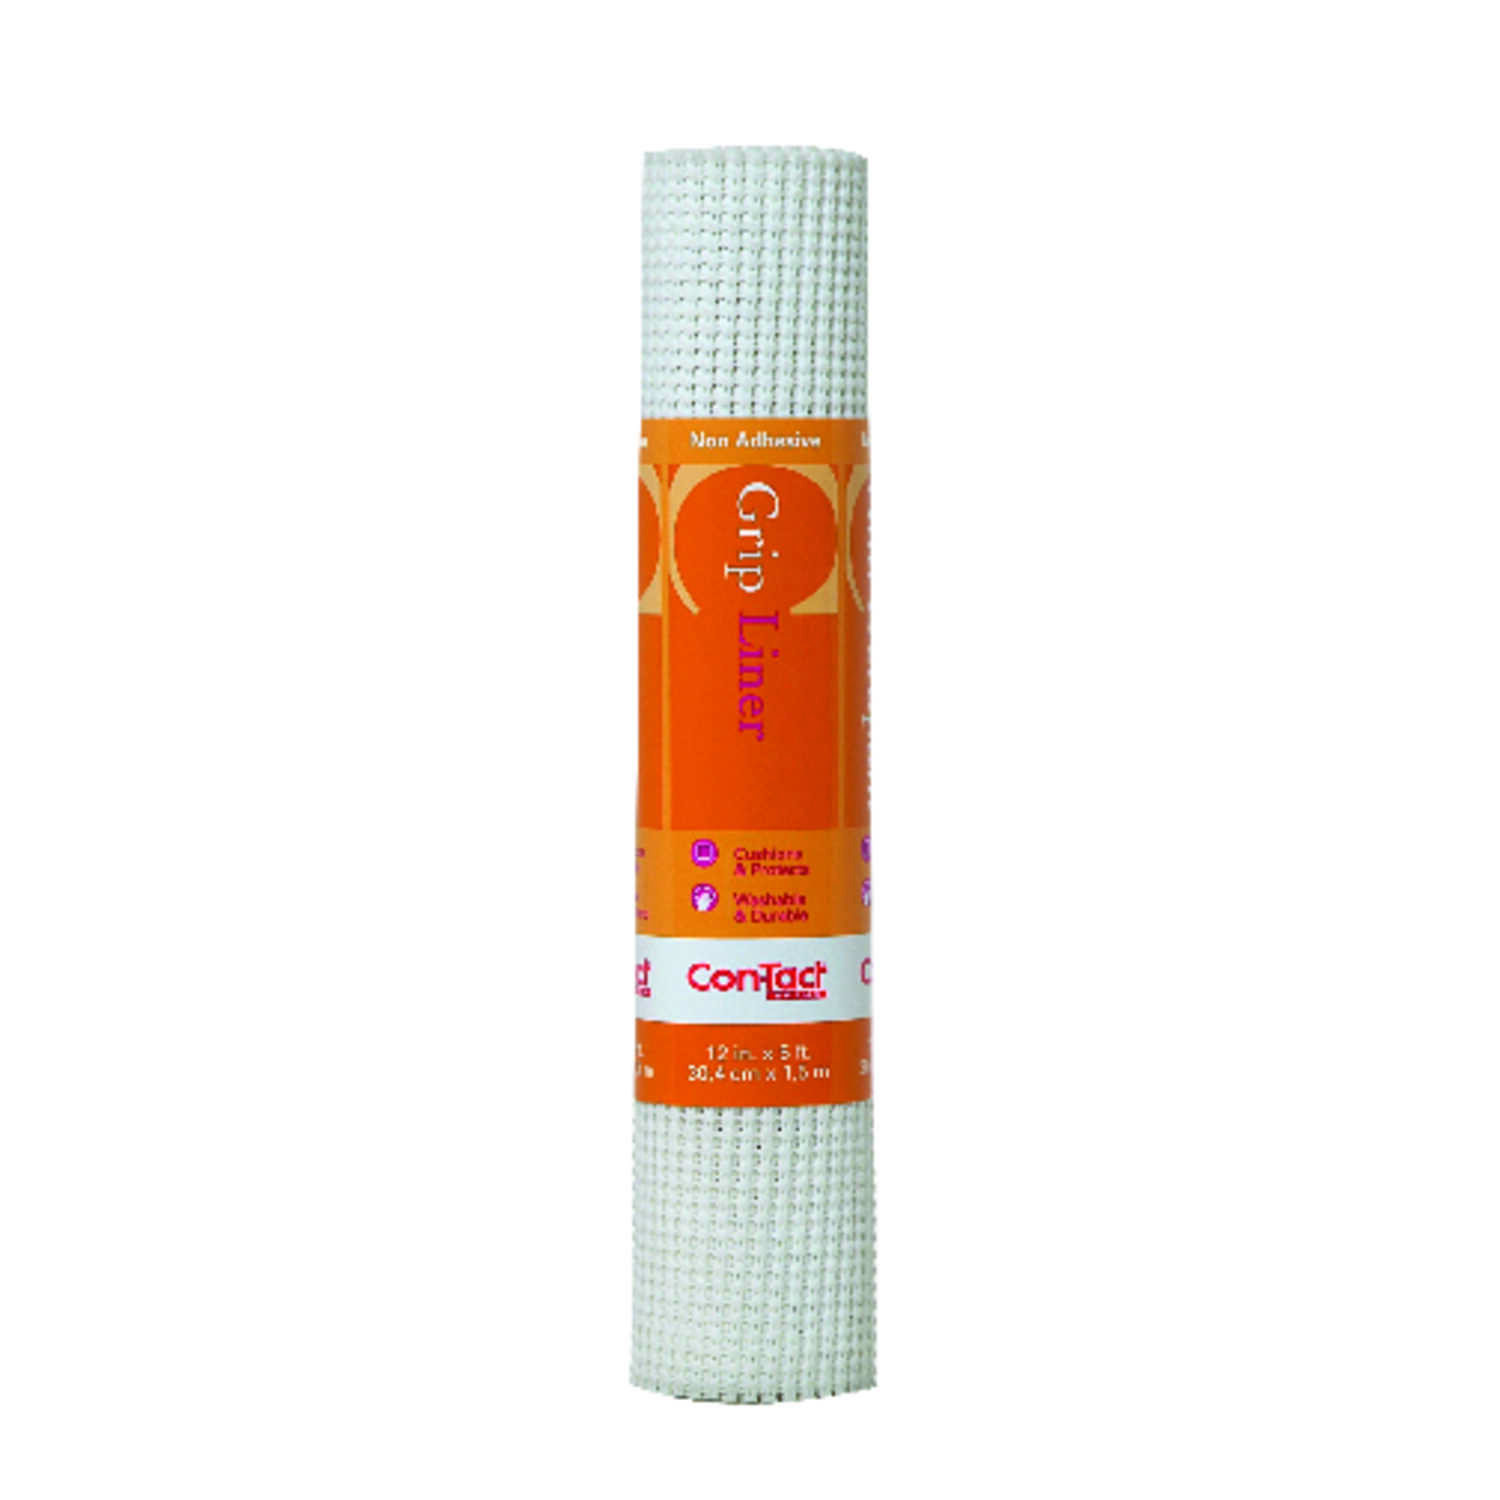 Con-Tact  Grip Liner  5 ft. L x 12 in. W White  Non-Adhesive  Beaded Liner